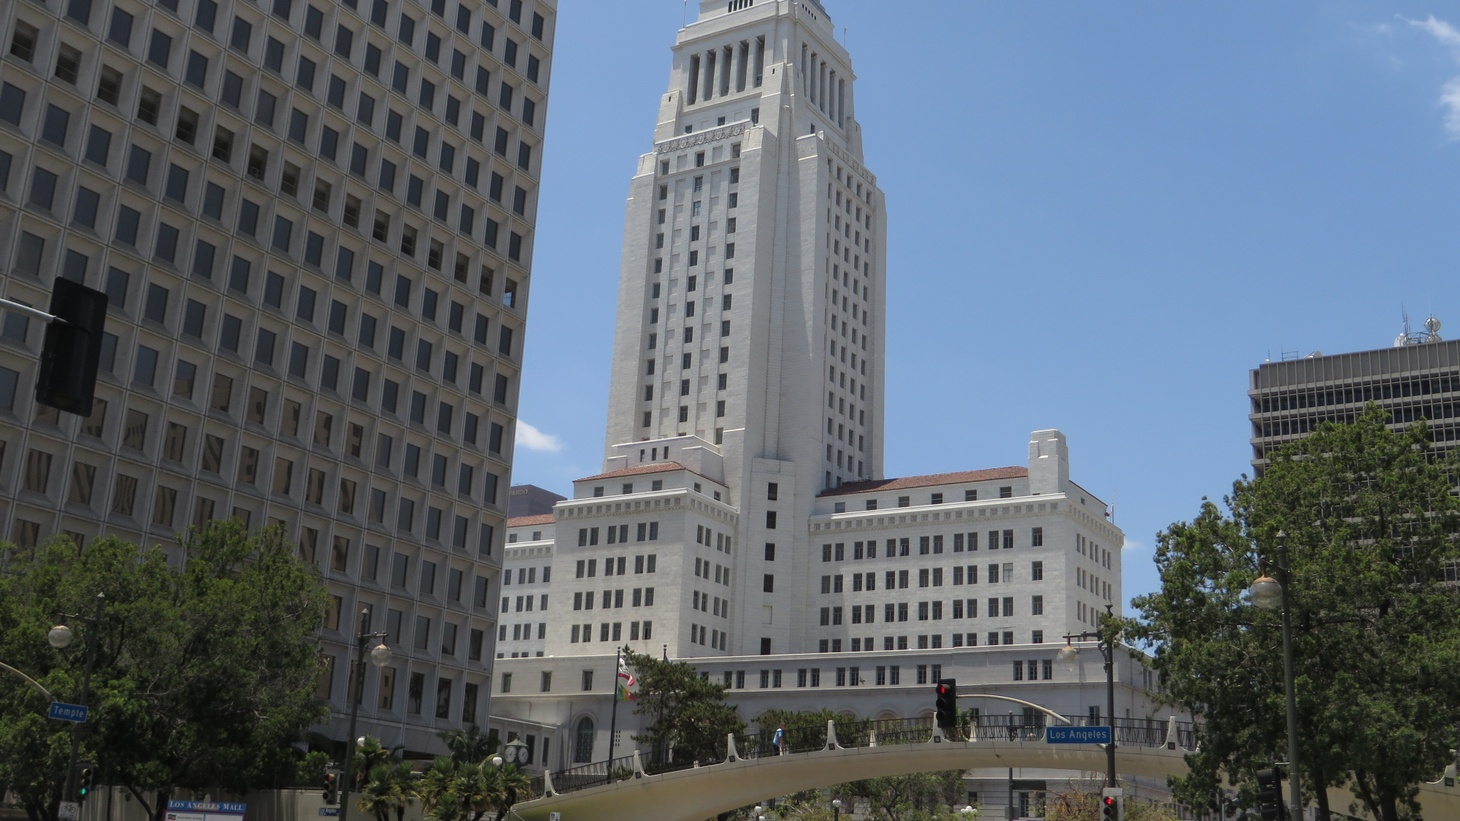 L.A. city councilmembers get paid more than the governor, members of Congress, and almost twice as much as California state lawmakers. How did that happen? And...is it possible anymore to talk about vaccines without devolving into a shouting match?   Banner Photo Credit: Ken Lund